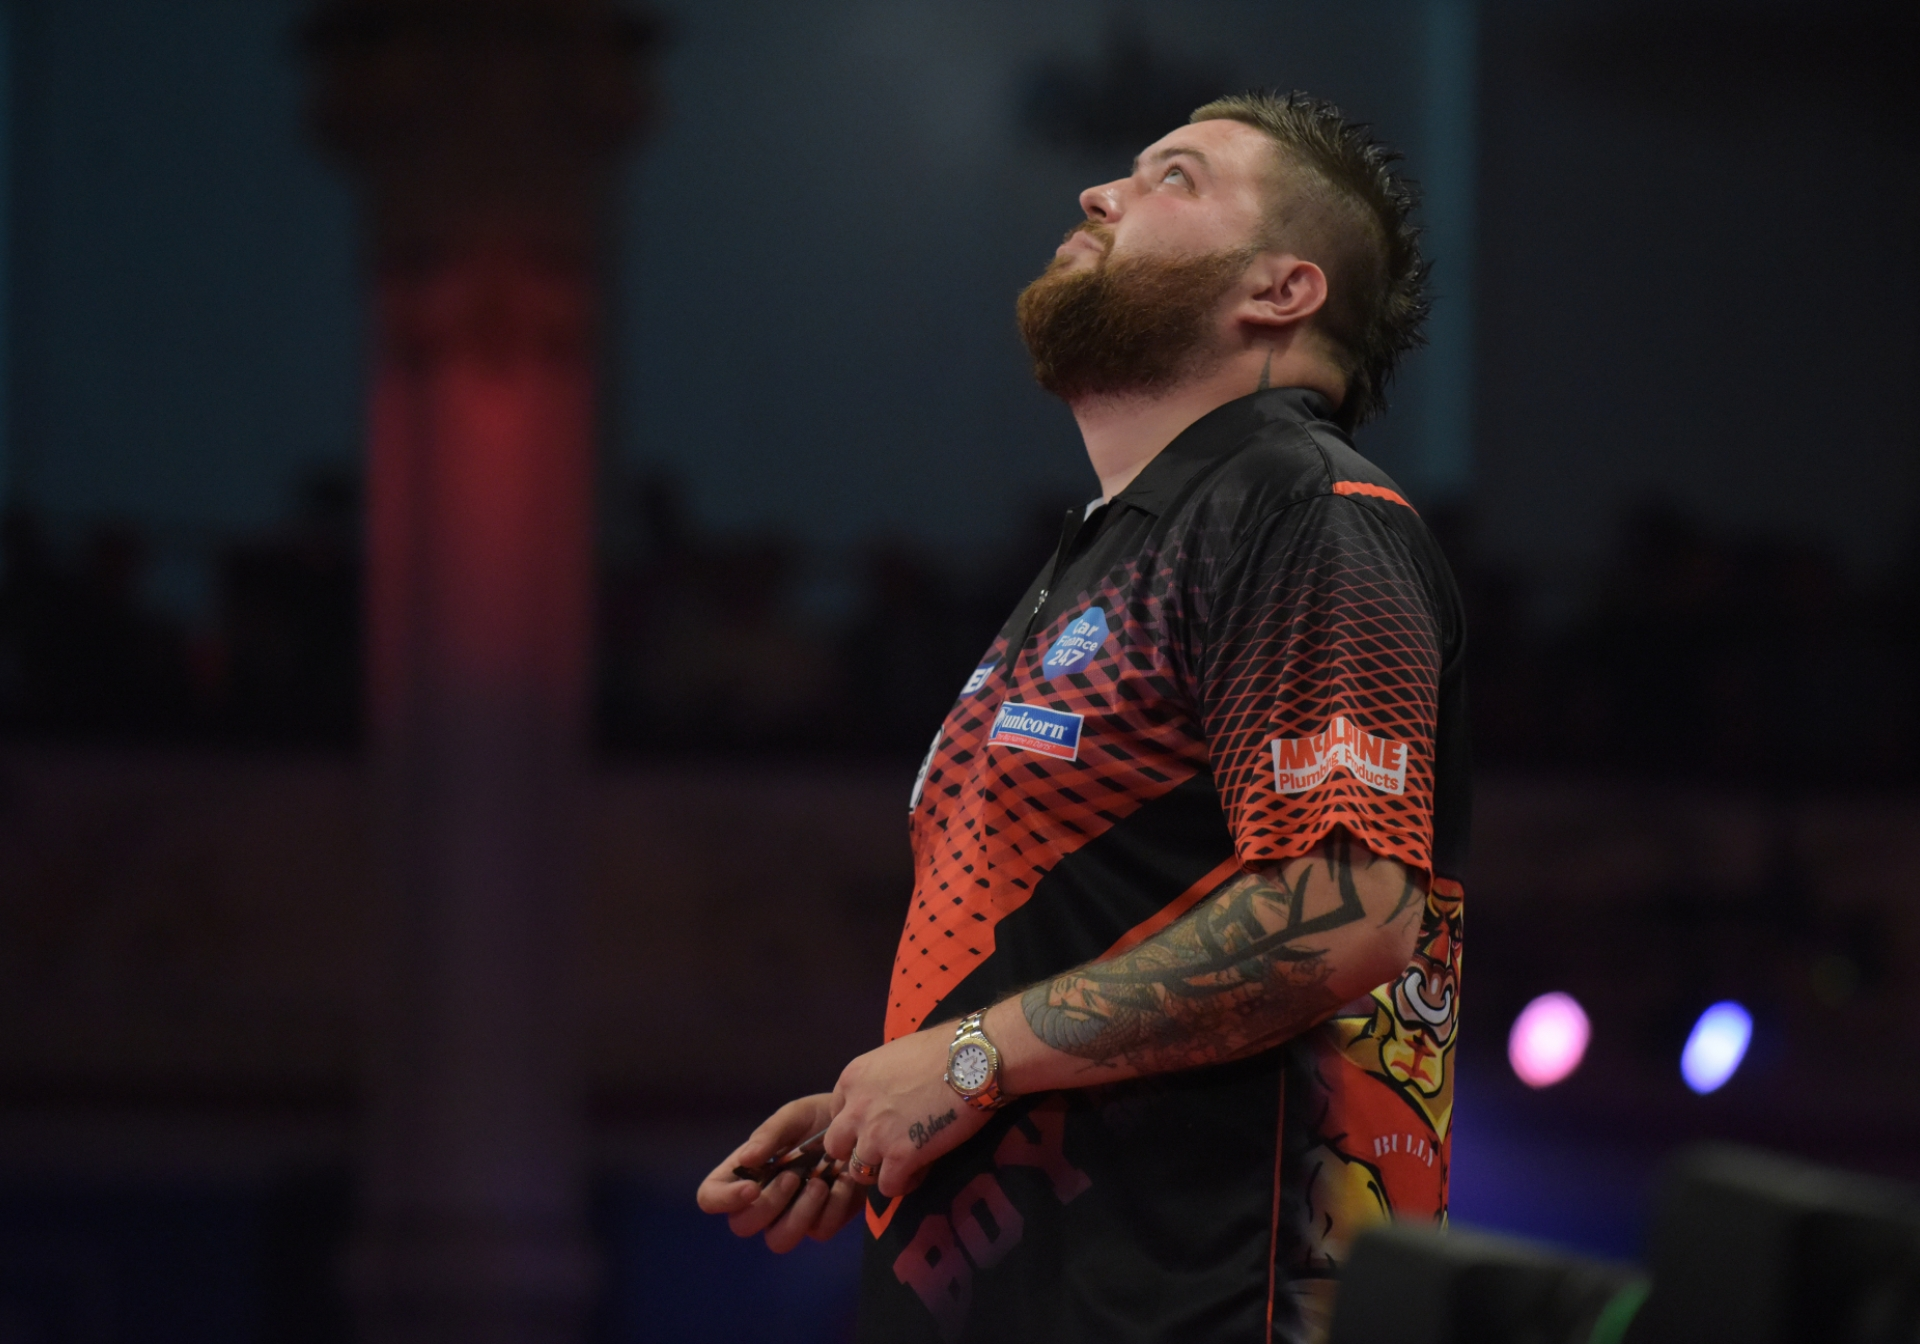 Michael Smith (Chris Dean, PDC)